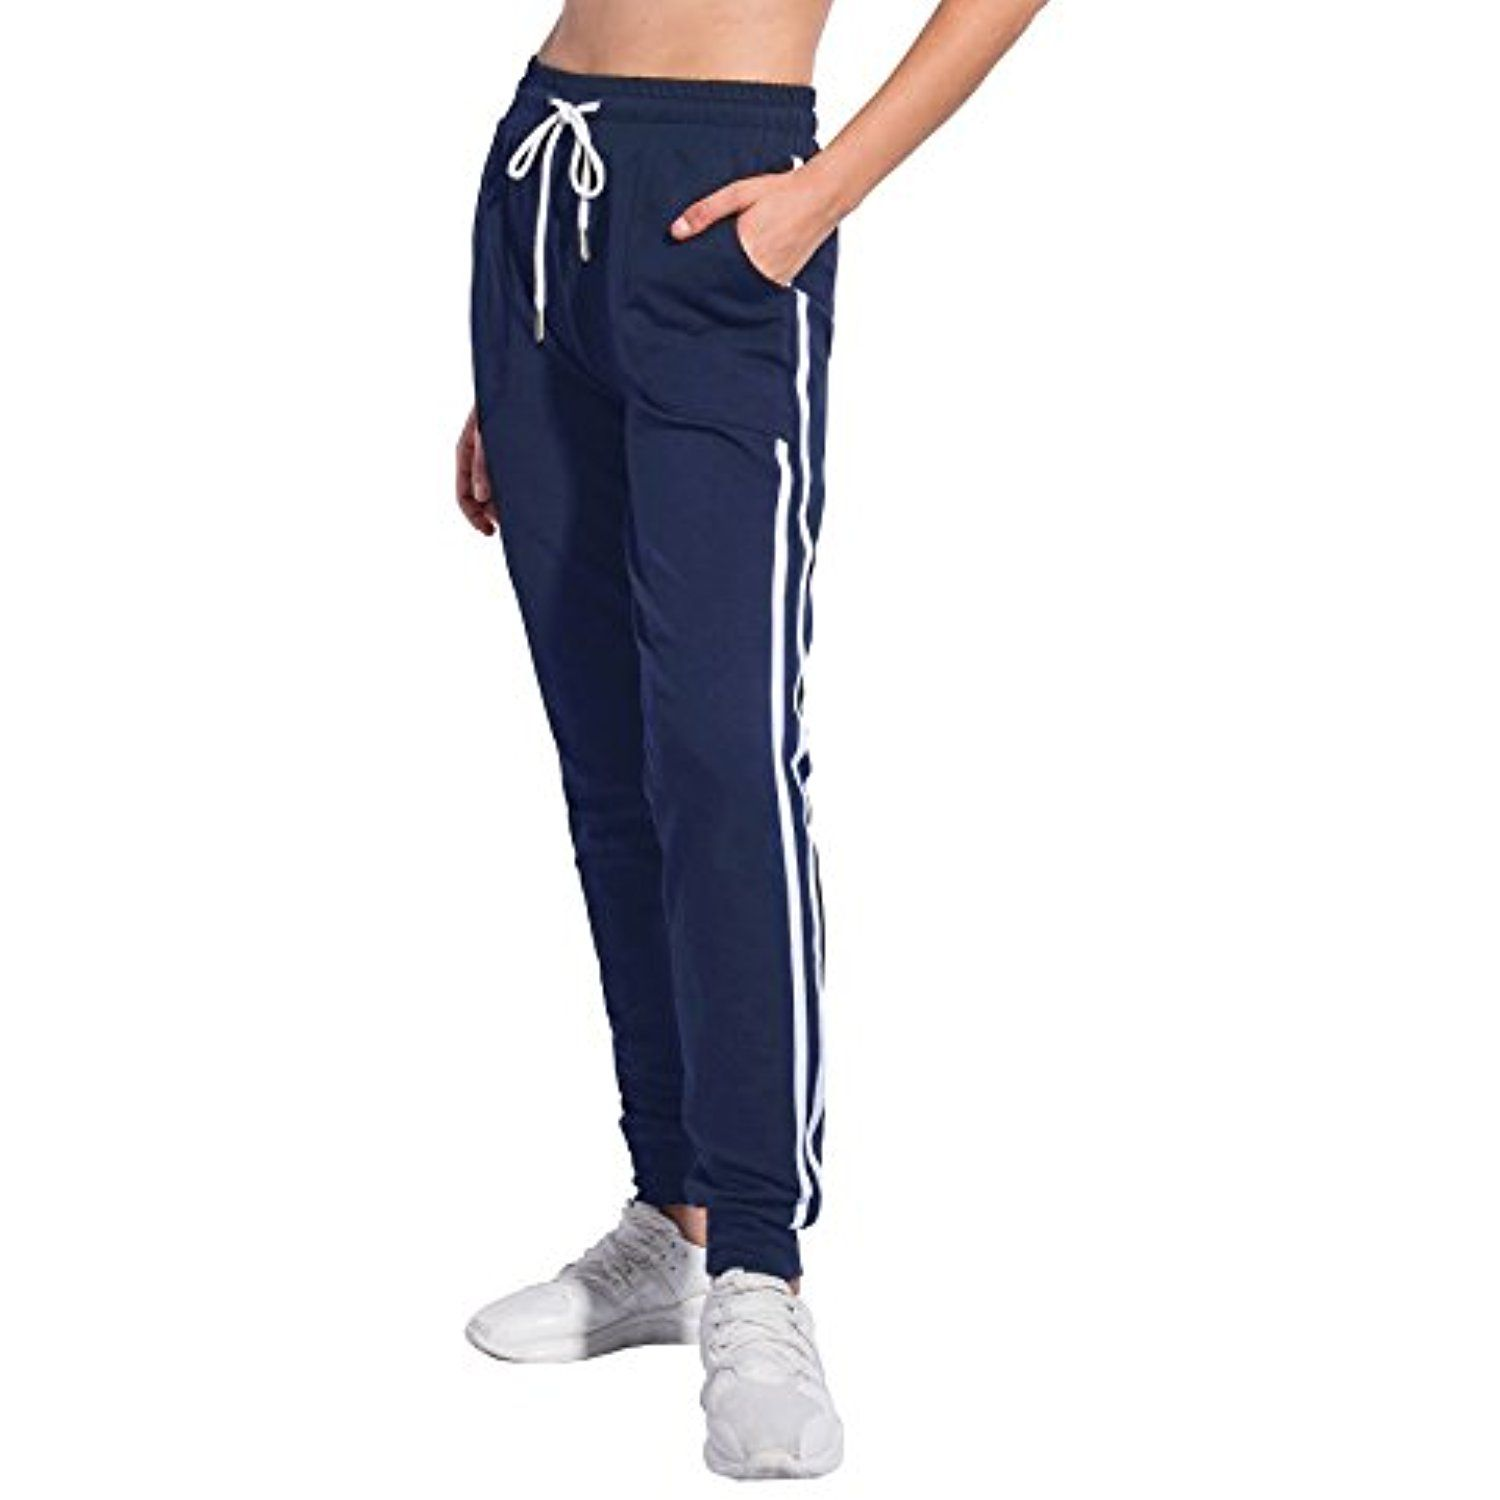 83c2fe223423 PULI Women s Drawstring Waist Cuffed Fitness Sports Gym Running Athletic  Workout Leggings Jogger Sweatpants With Pockets